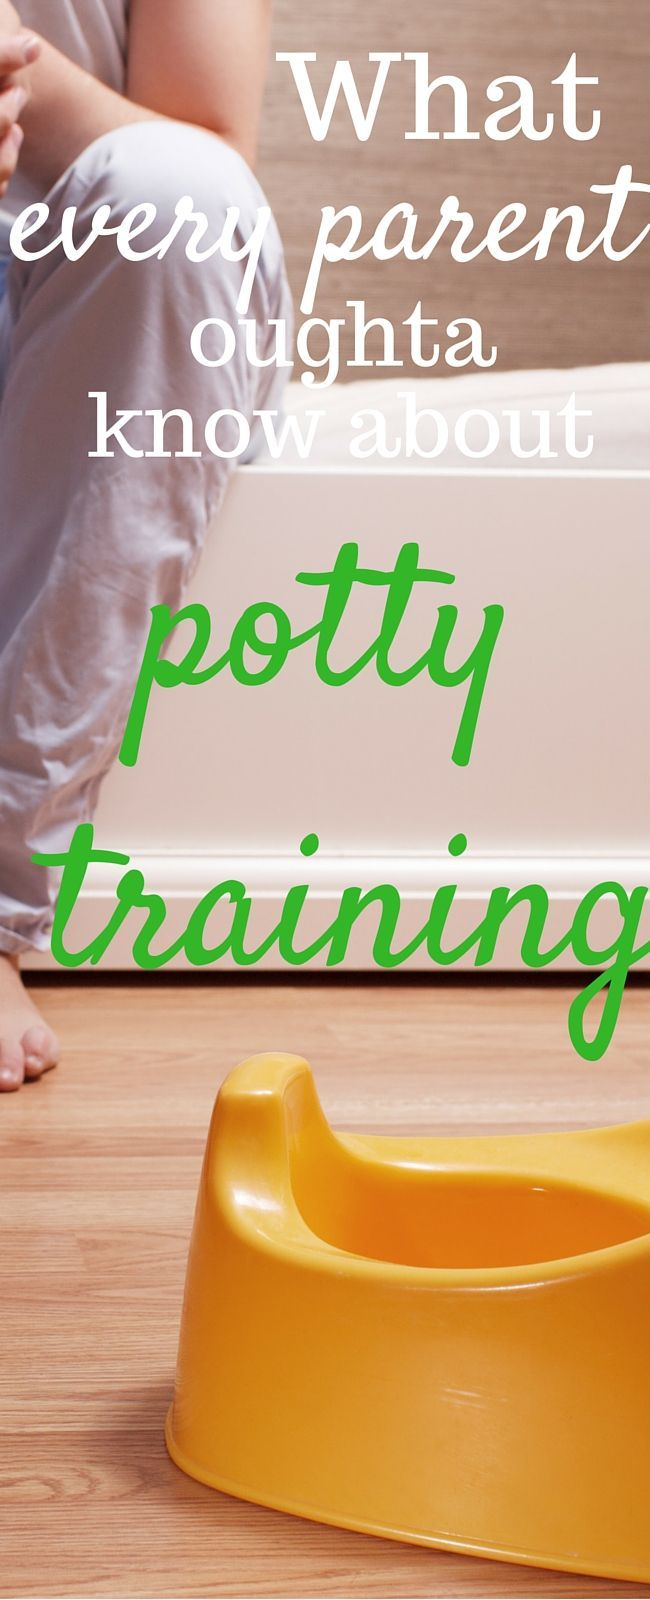 This is the secret that will keep you from going crazy when potty training your child.